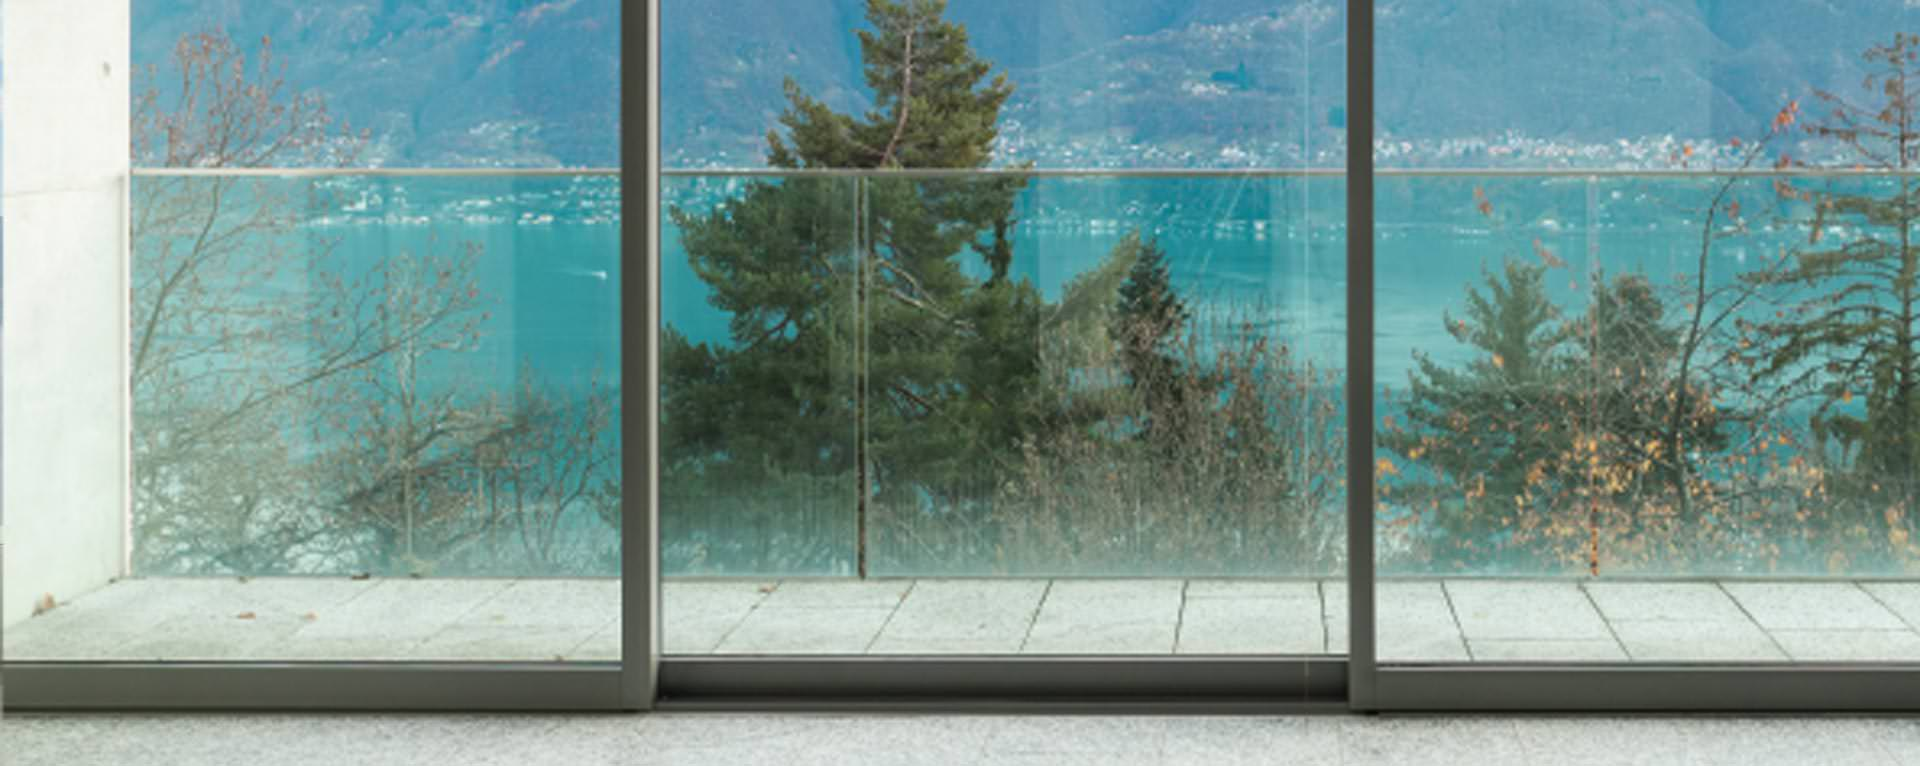 Top 10 Benefits of Sliding Doors: The EdgeGLIDE Door